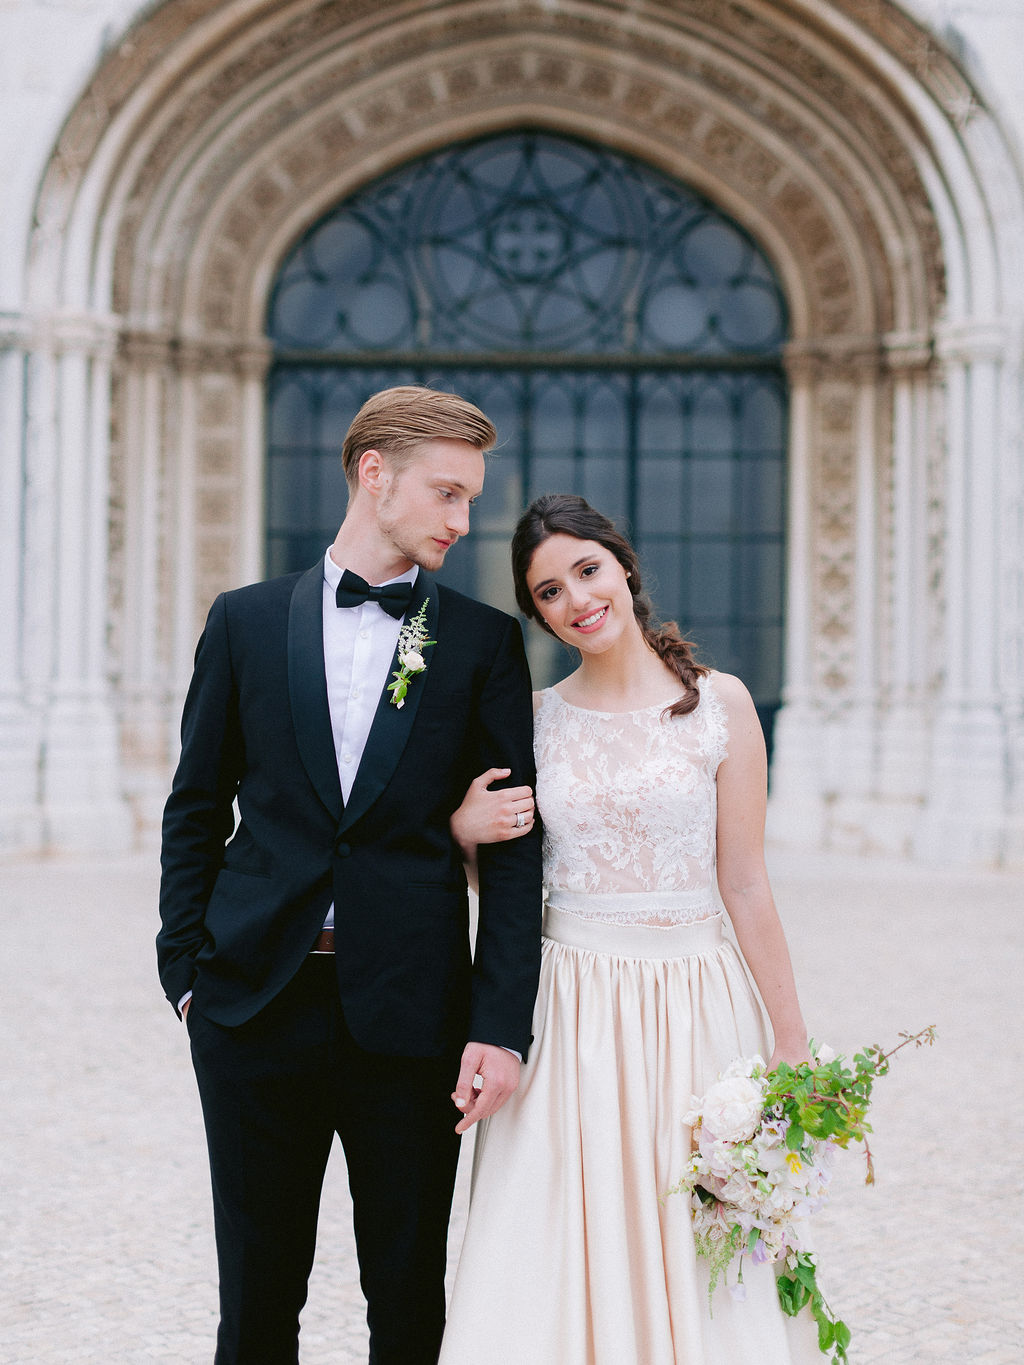 Old World Romantic Wedding Portrait